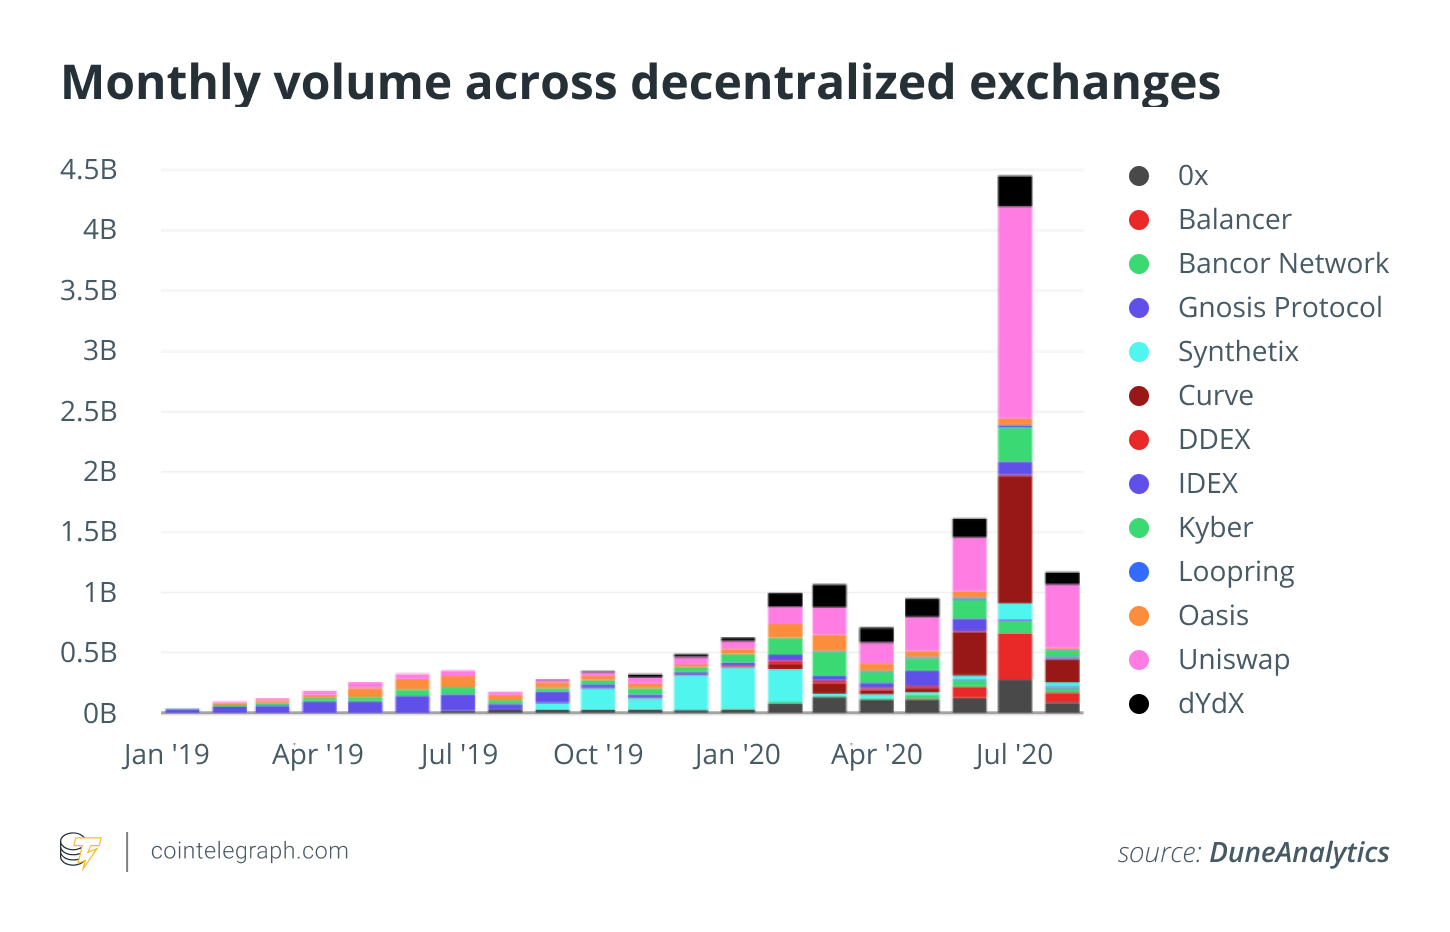 Monthly volume across decentralized exchanges